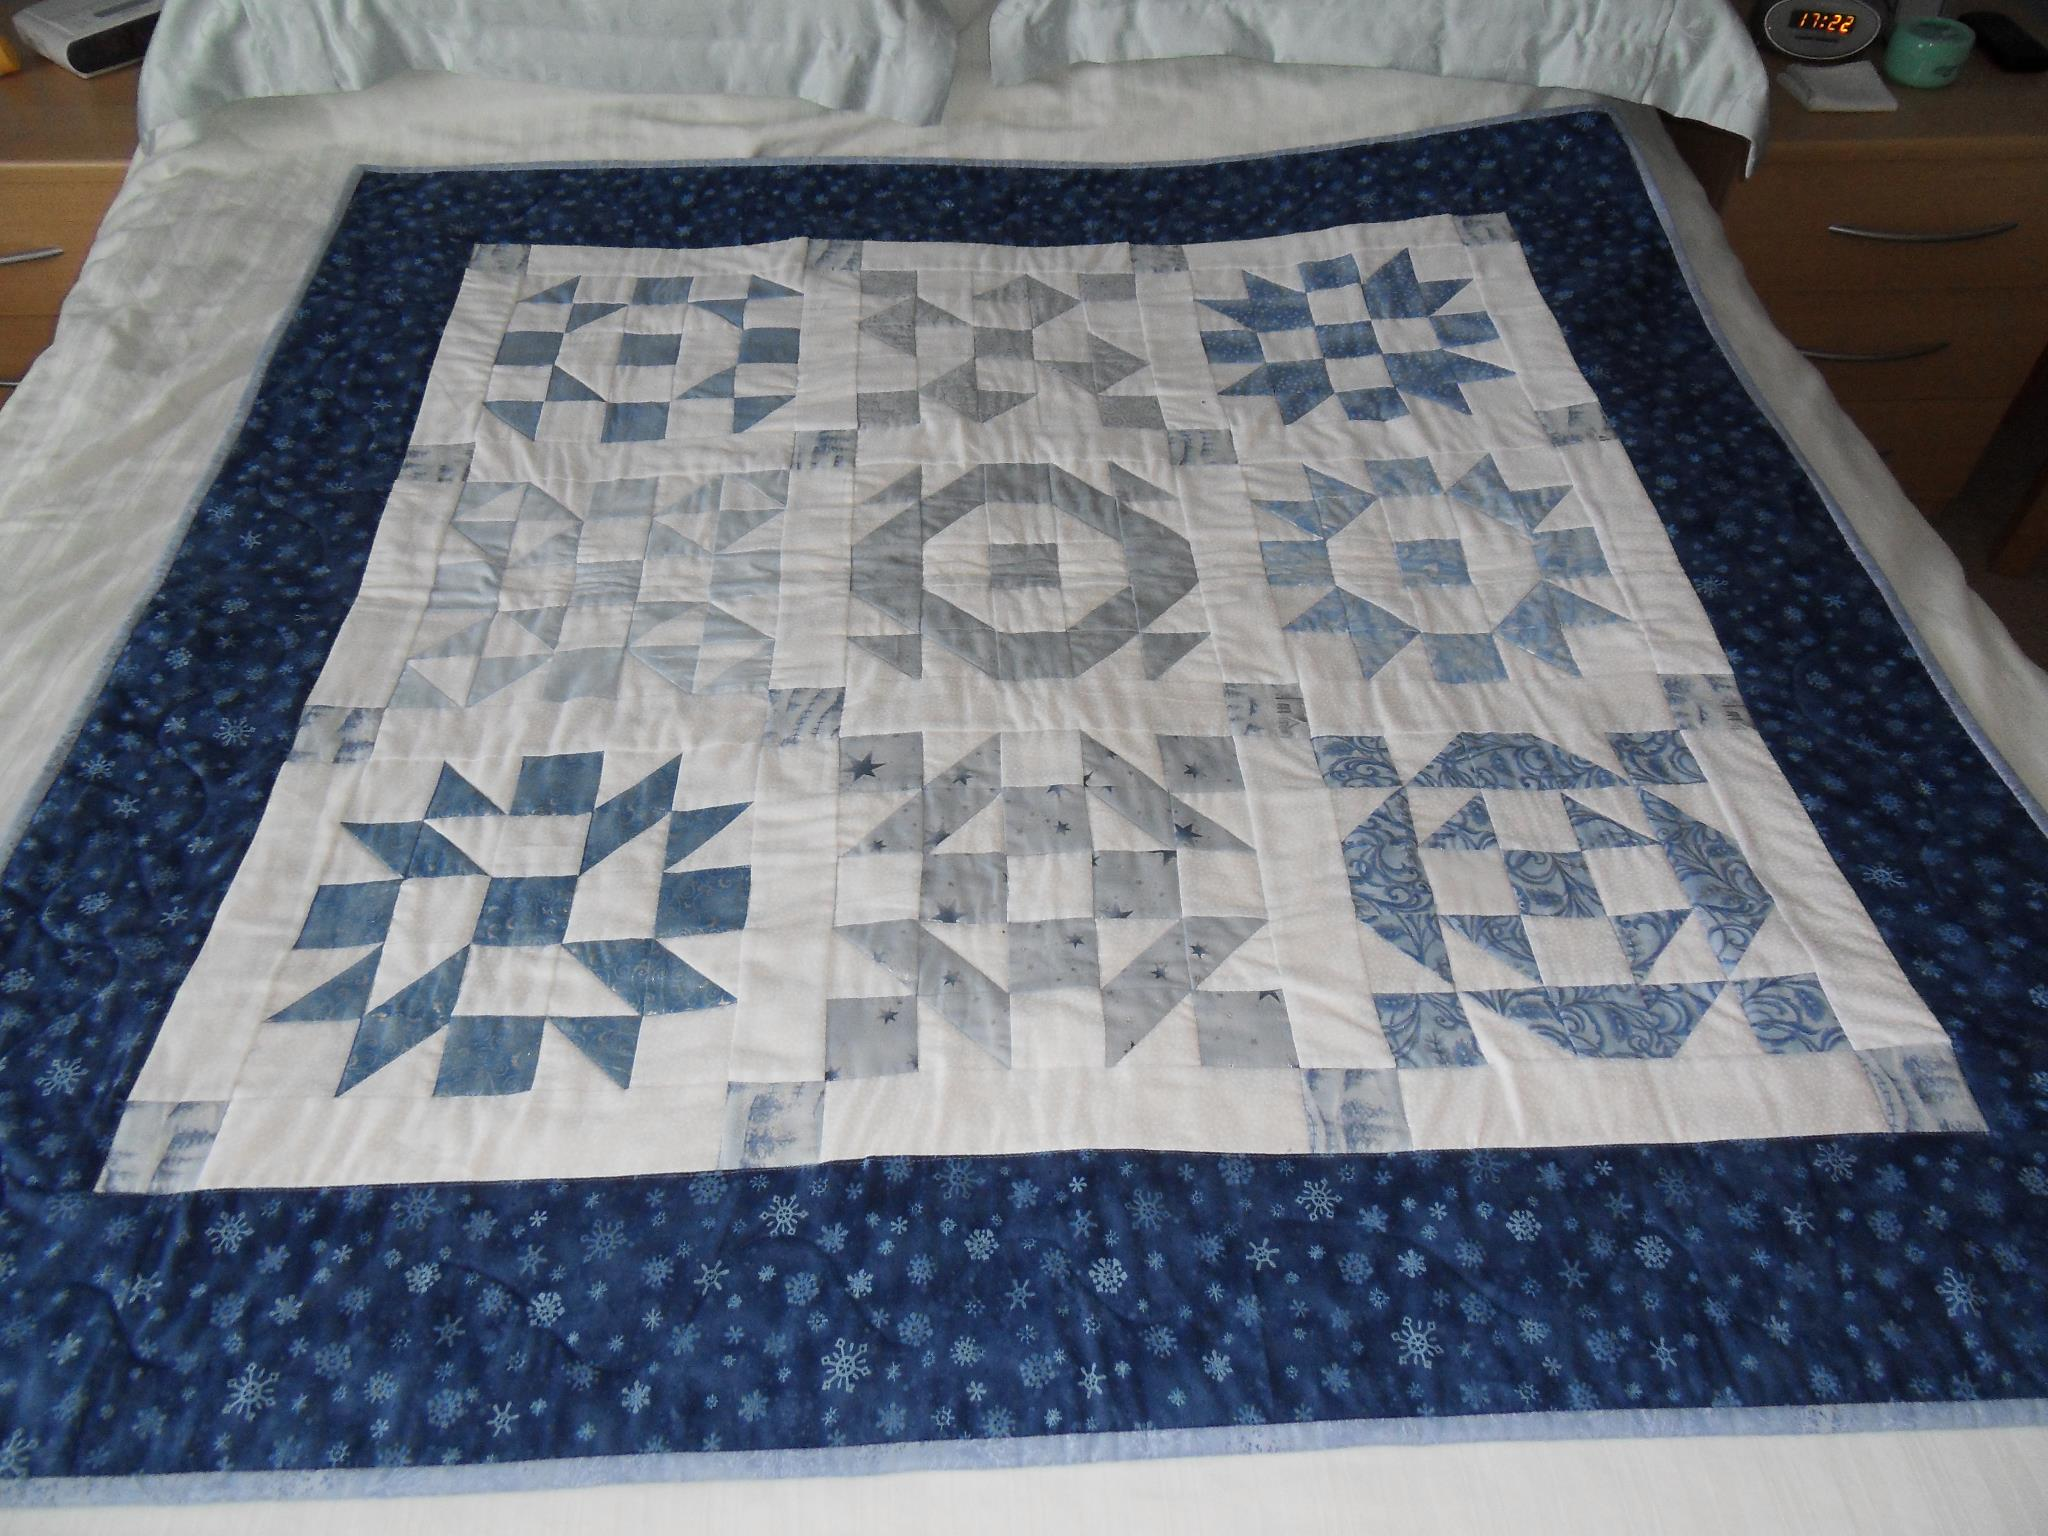 187 Bed Sofa And Lap Quiltshand Made Quilting